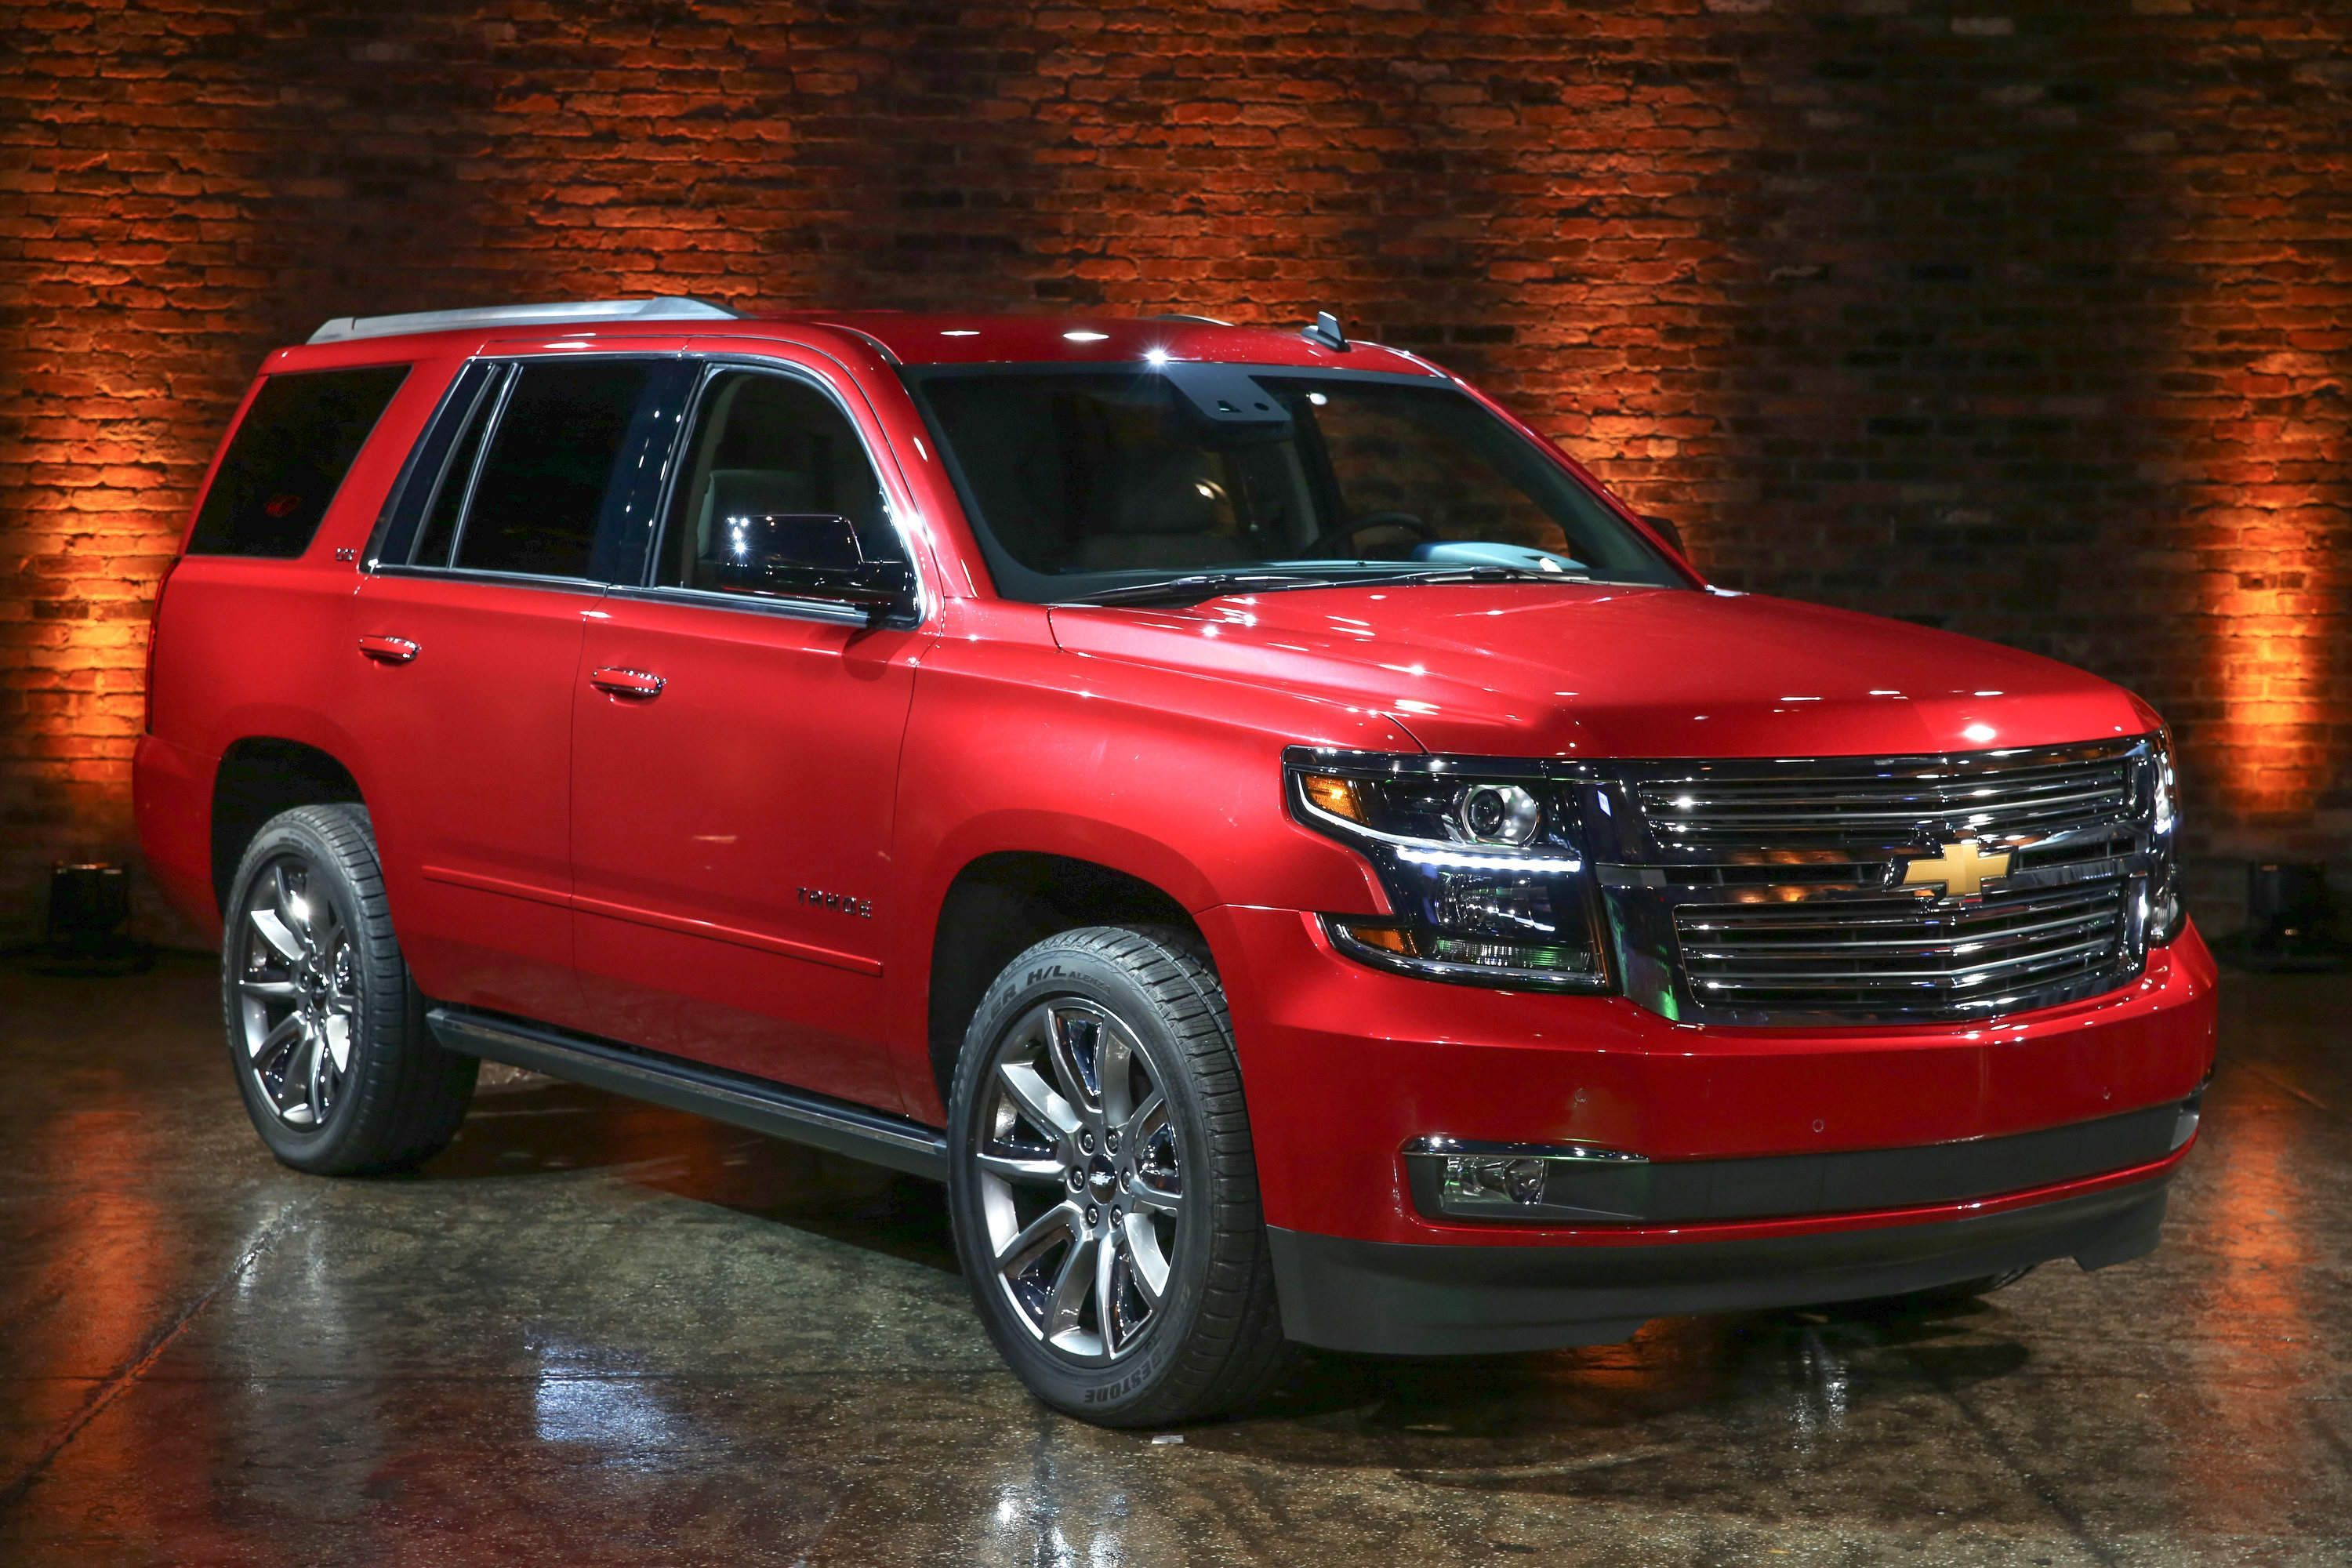 The allnew 2015 Chevrolet Tahoe offers more functionality